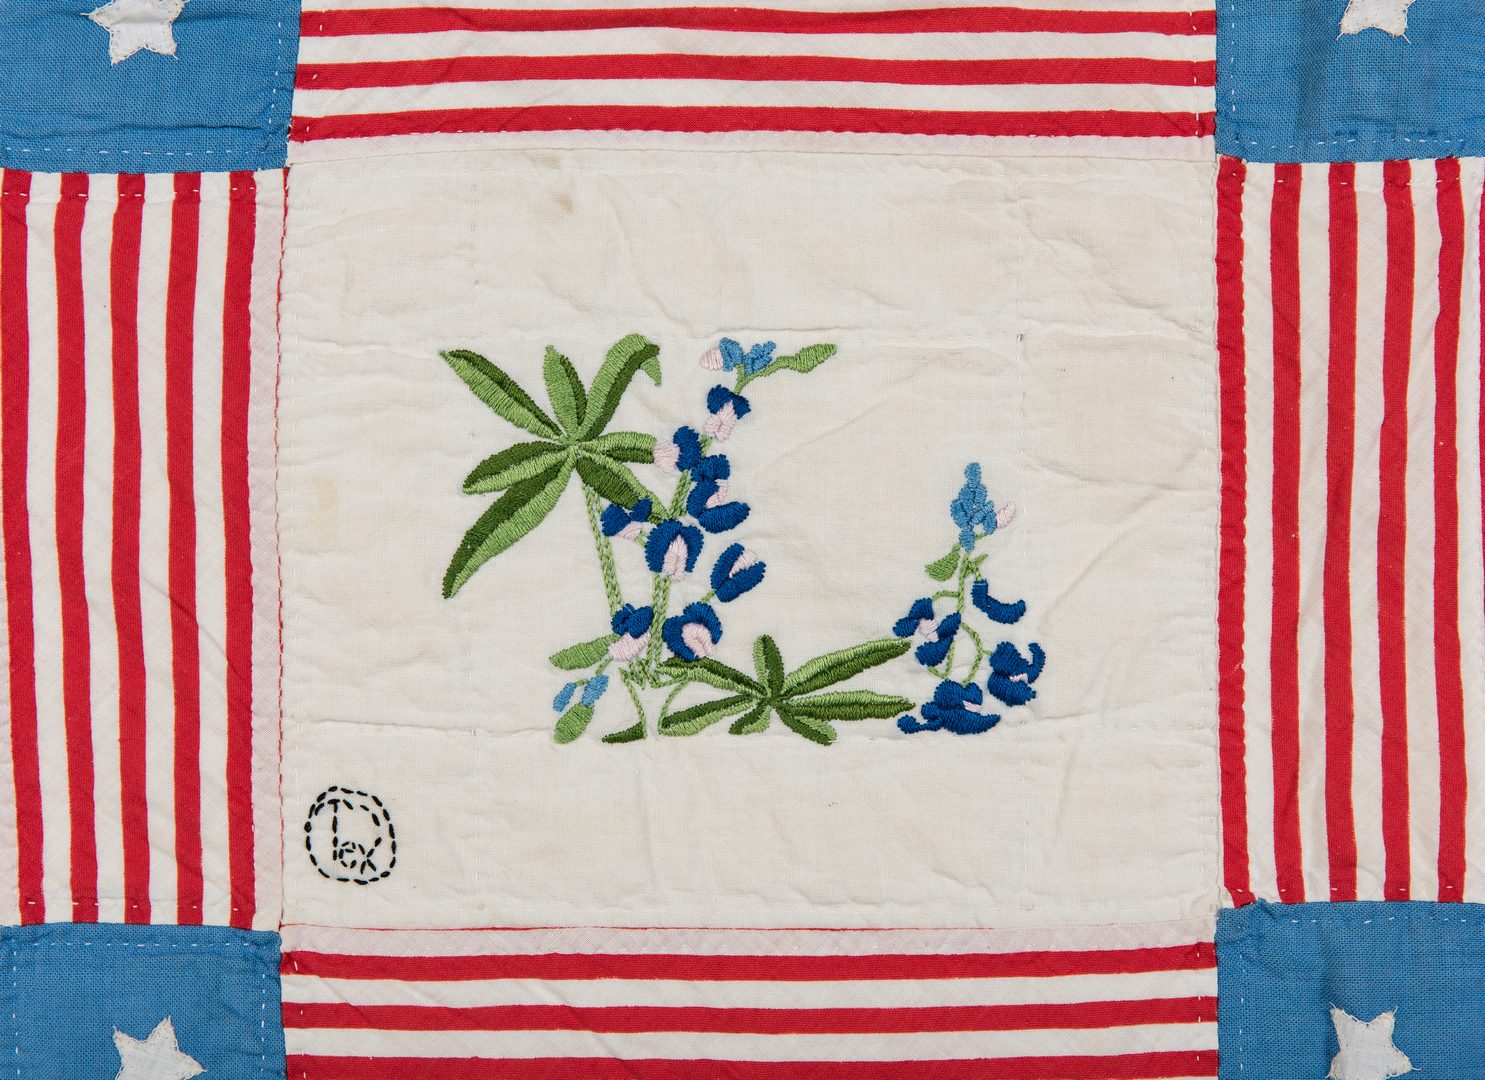 Lot 338: Southern Patriotic Quilt, early 20th c.